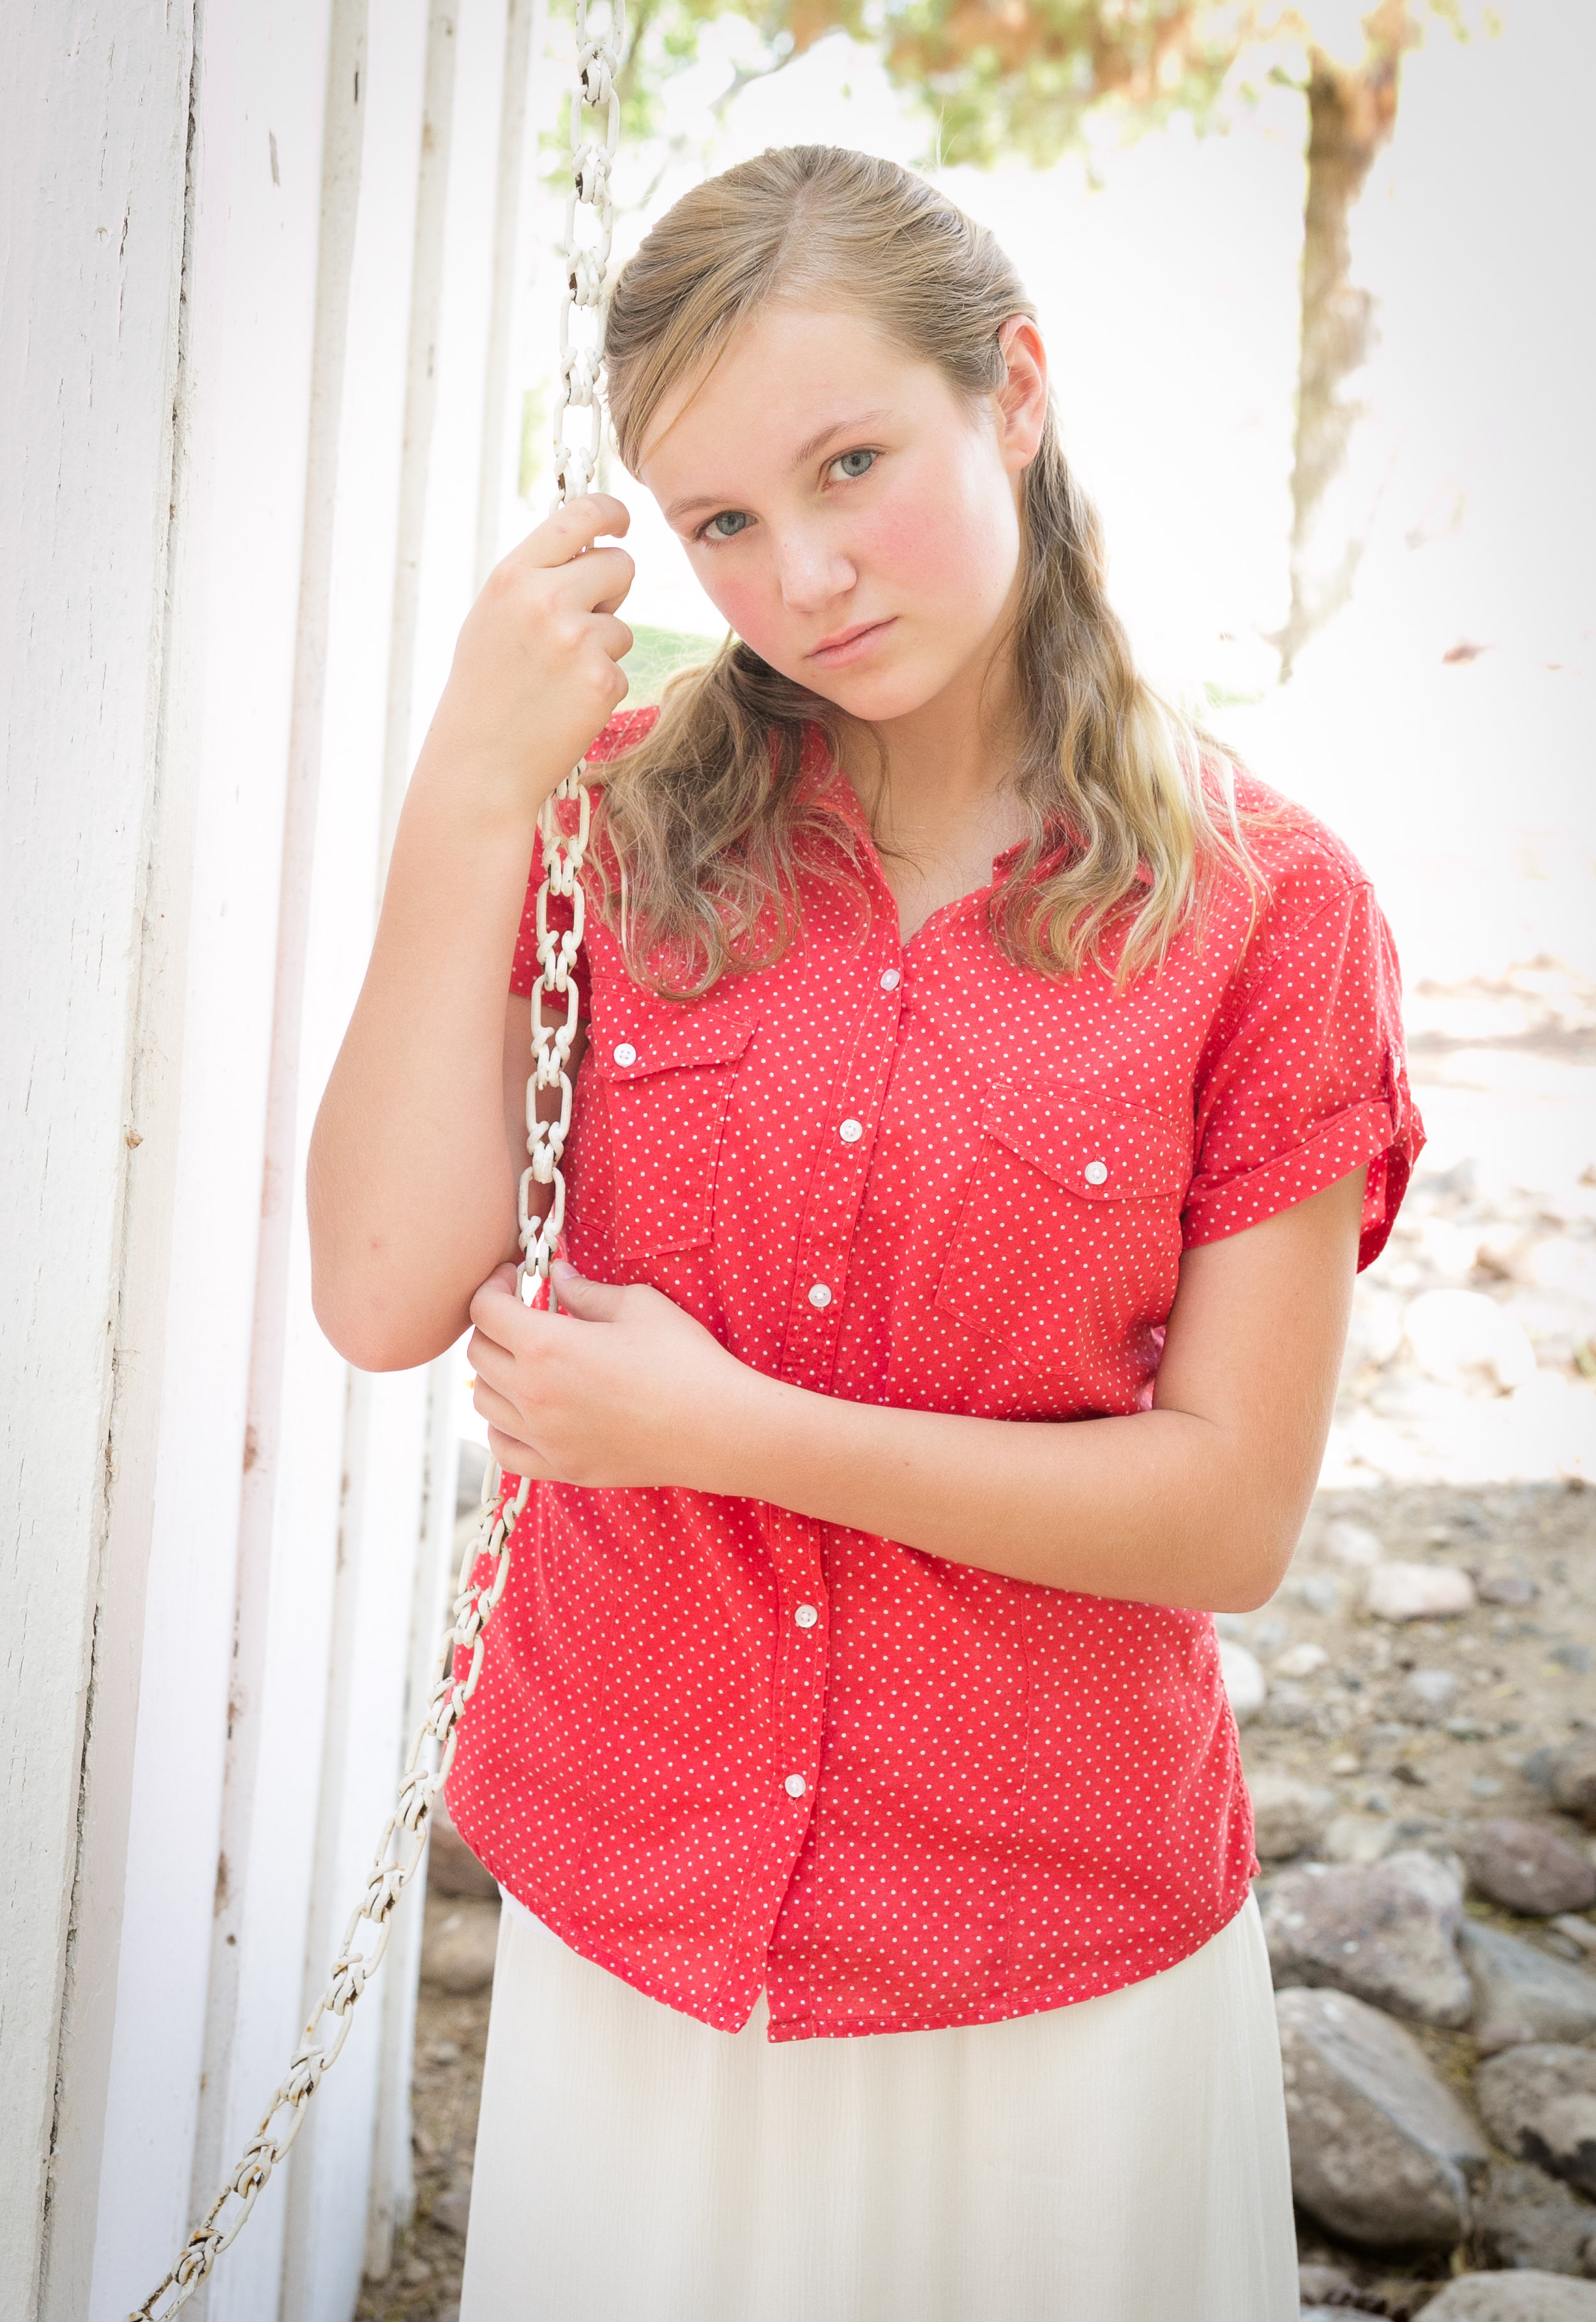 Allison and I had so much fun on her tween session!